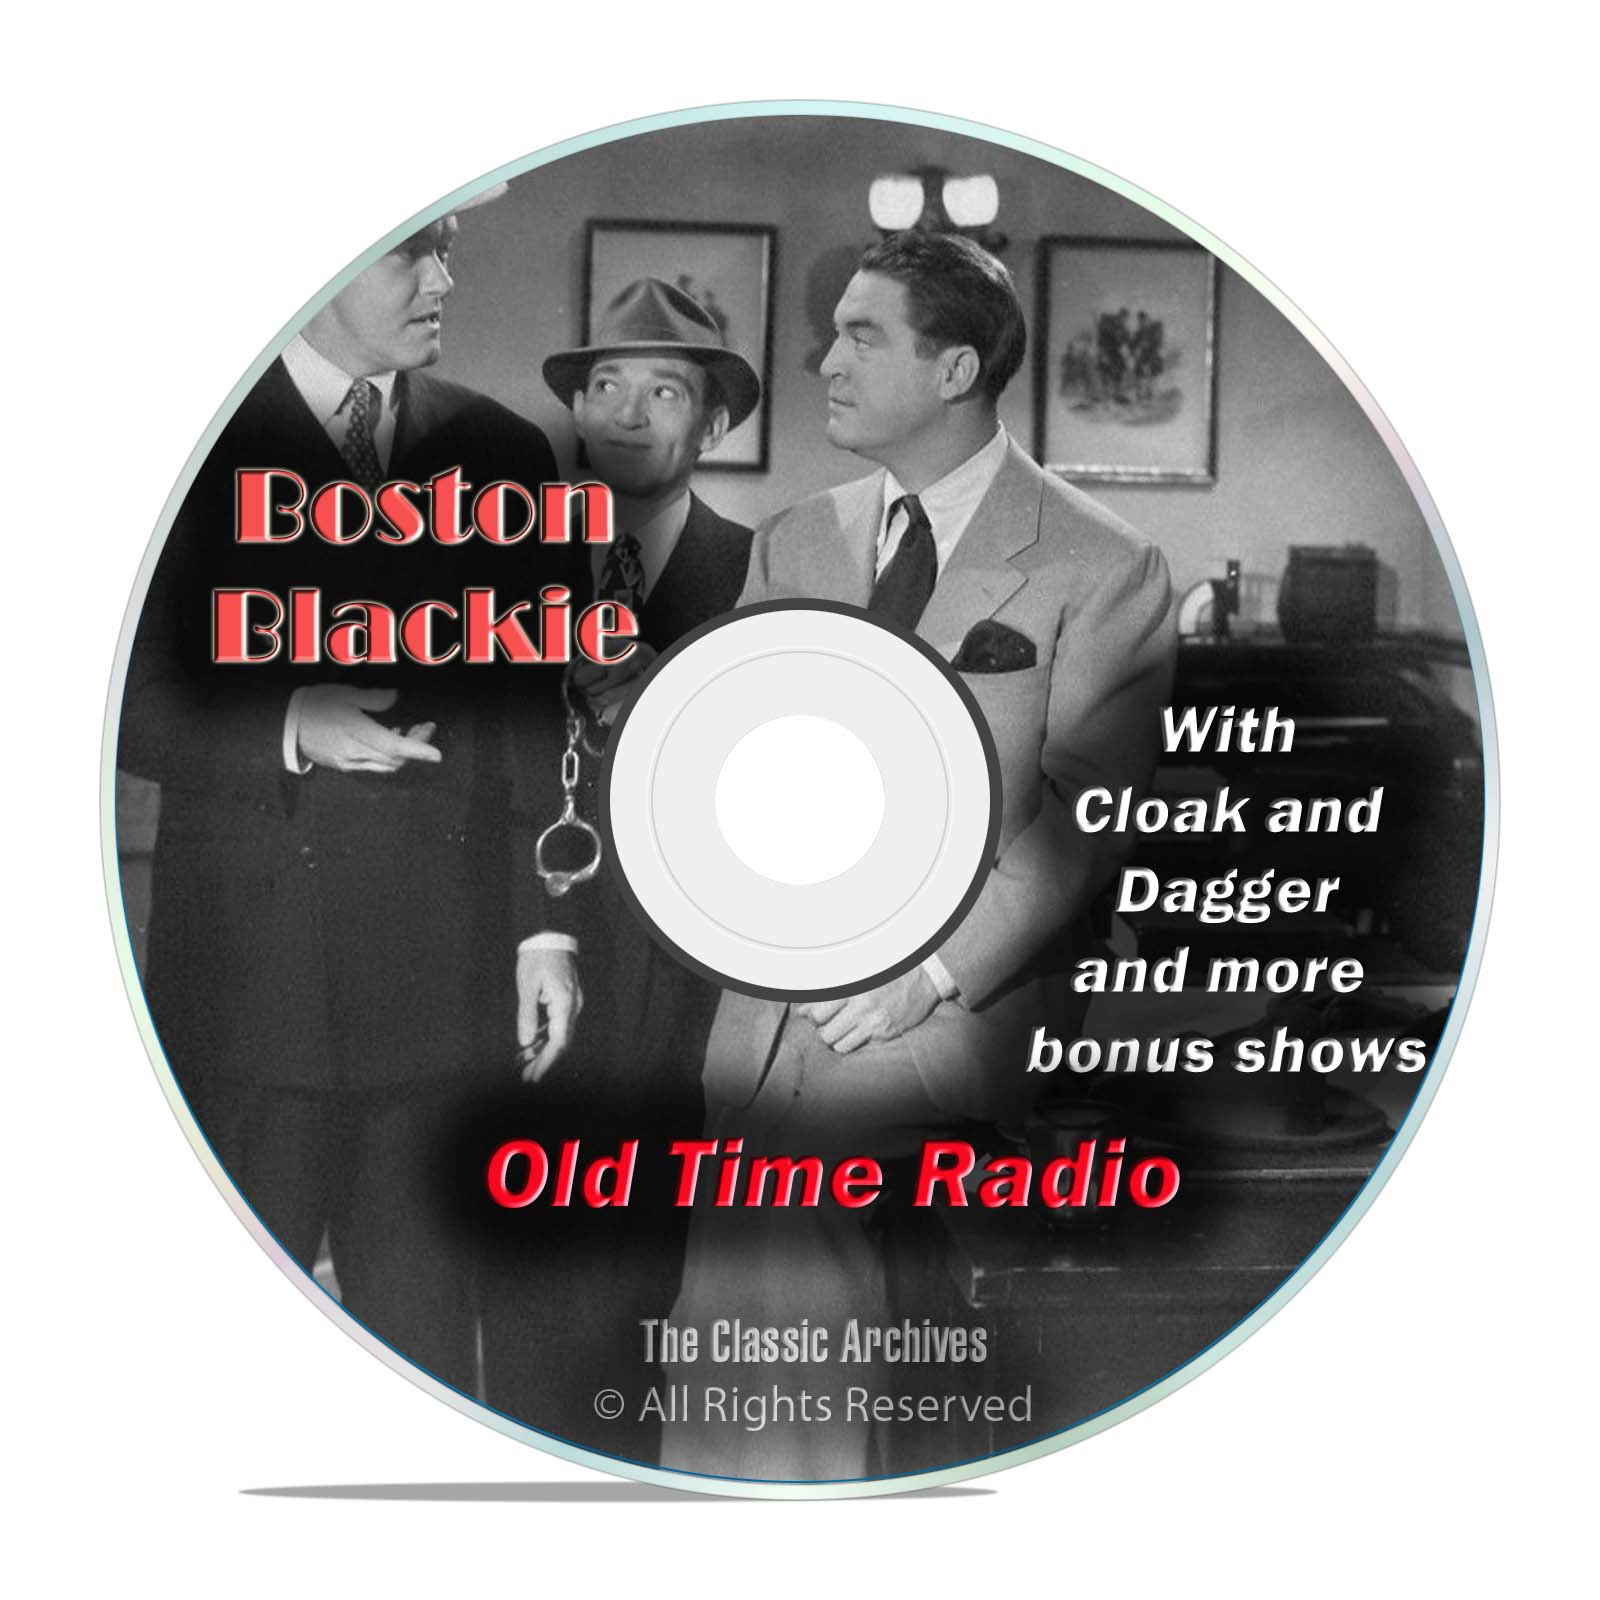 Boston Blackie, 1,060 Mystery Thriller Old Time Radio Shows, OTR, DVD